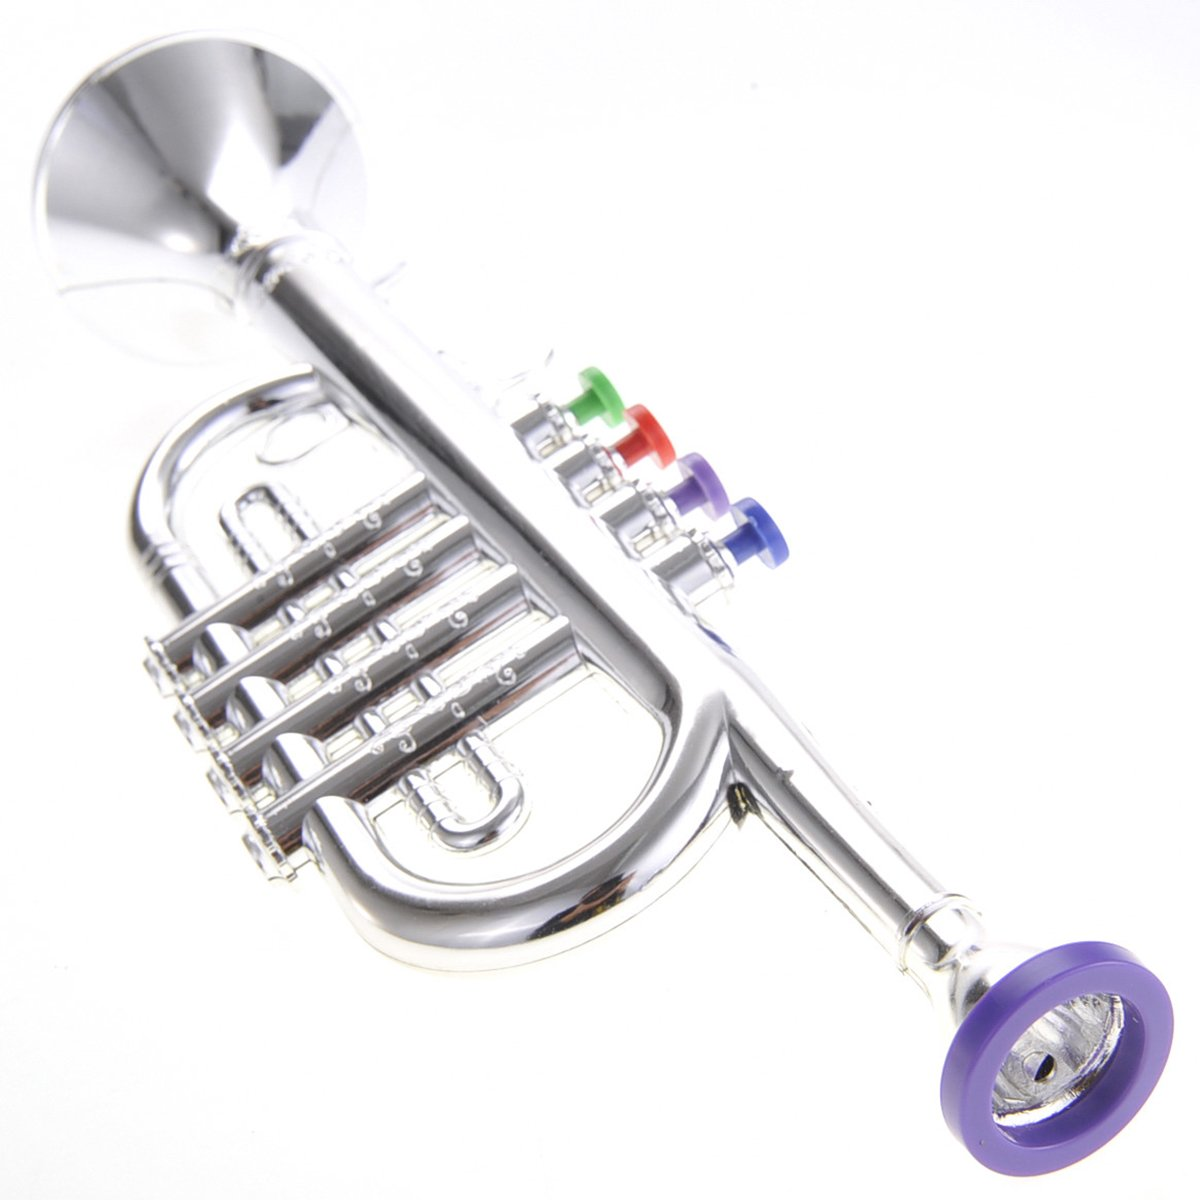 Cottontail Kids Musical Instrument Toy Metallic Silver Trumpet 14.5'' by Cottontail